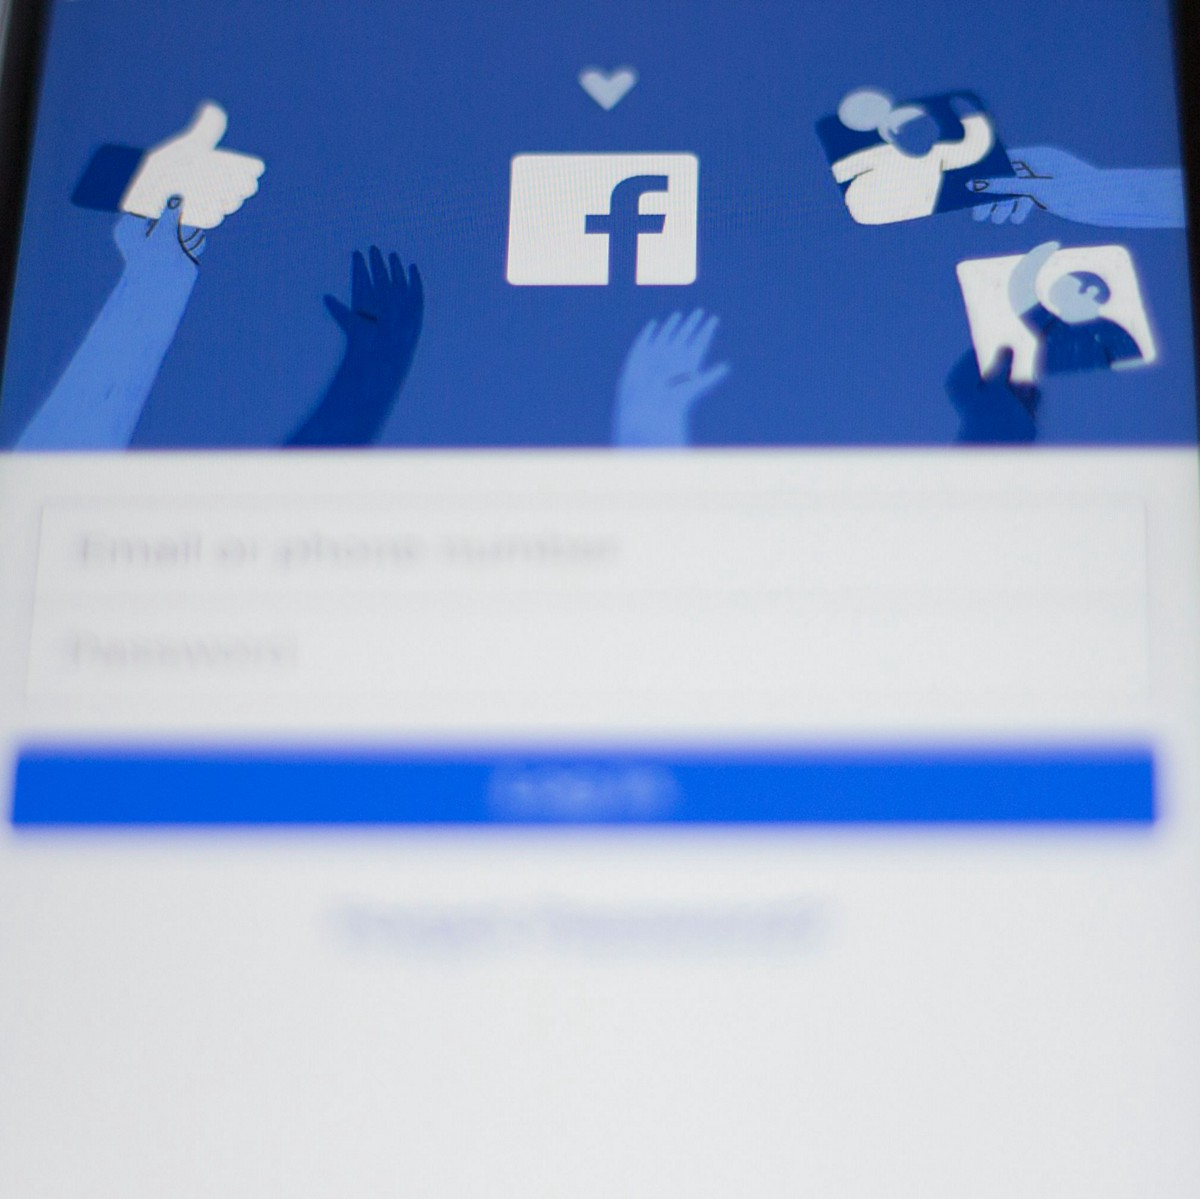 The Joy and Angst of Facebook